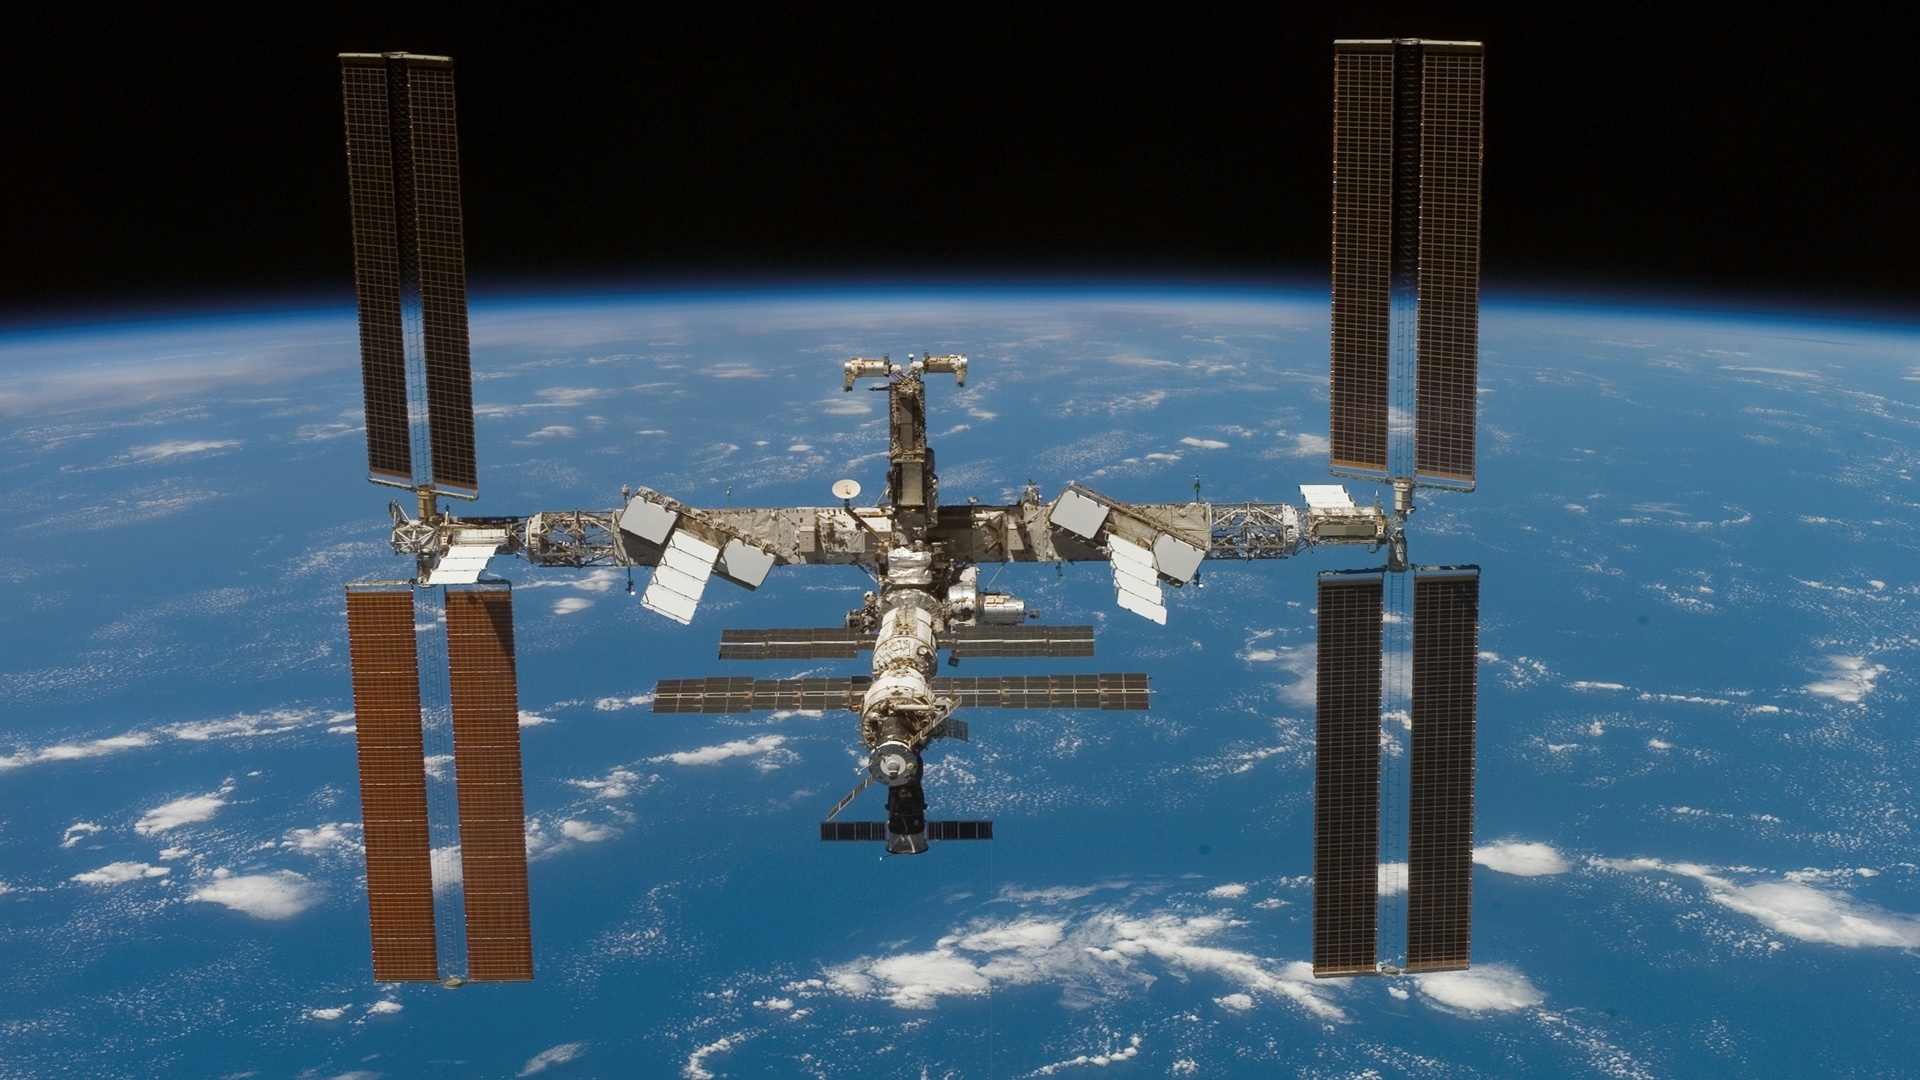 ISS Made It's 100,000th Orbit Around Earth - Equivalent Of 2.6 billion Miles!!